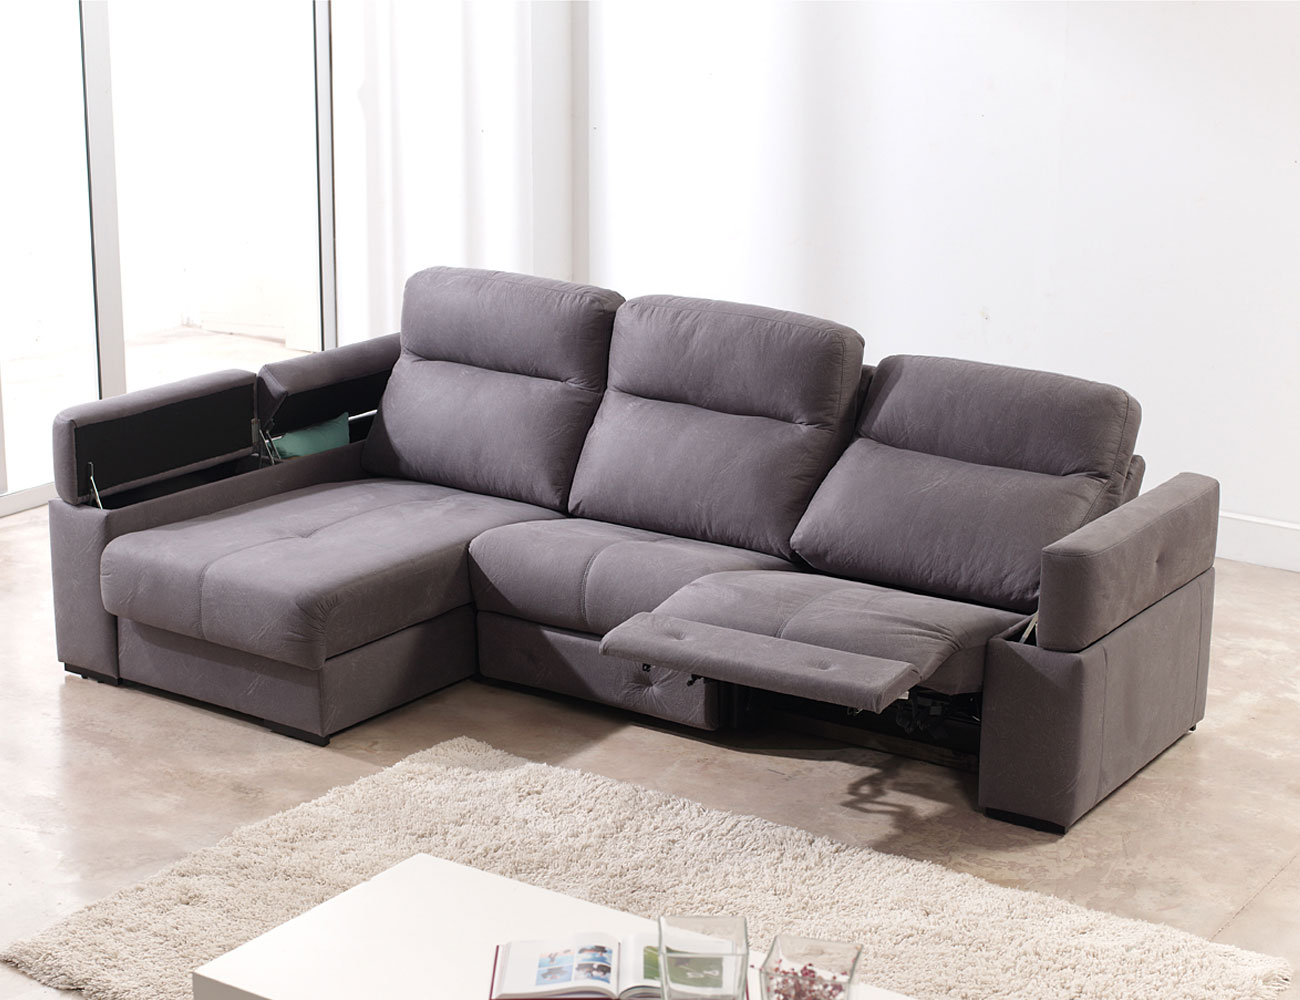 Sofa chaiselongue relax motor electrico 3 arcon 14